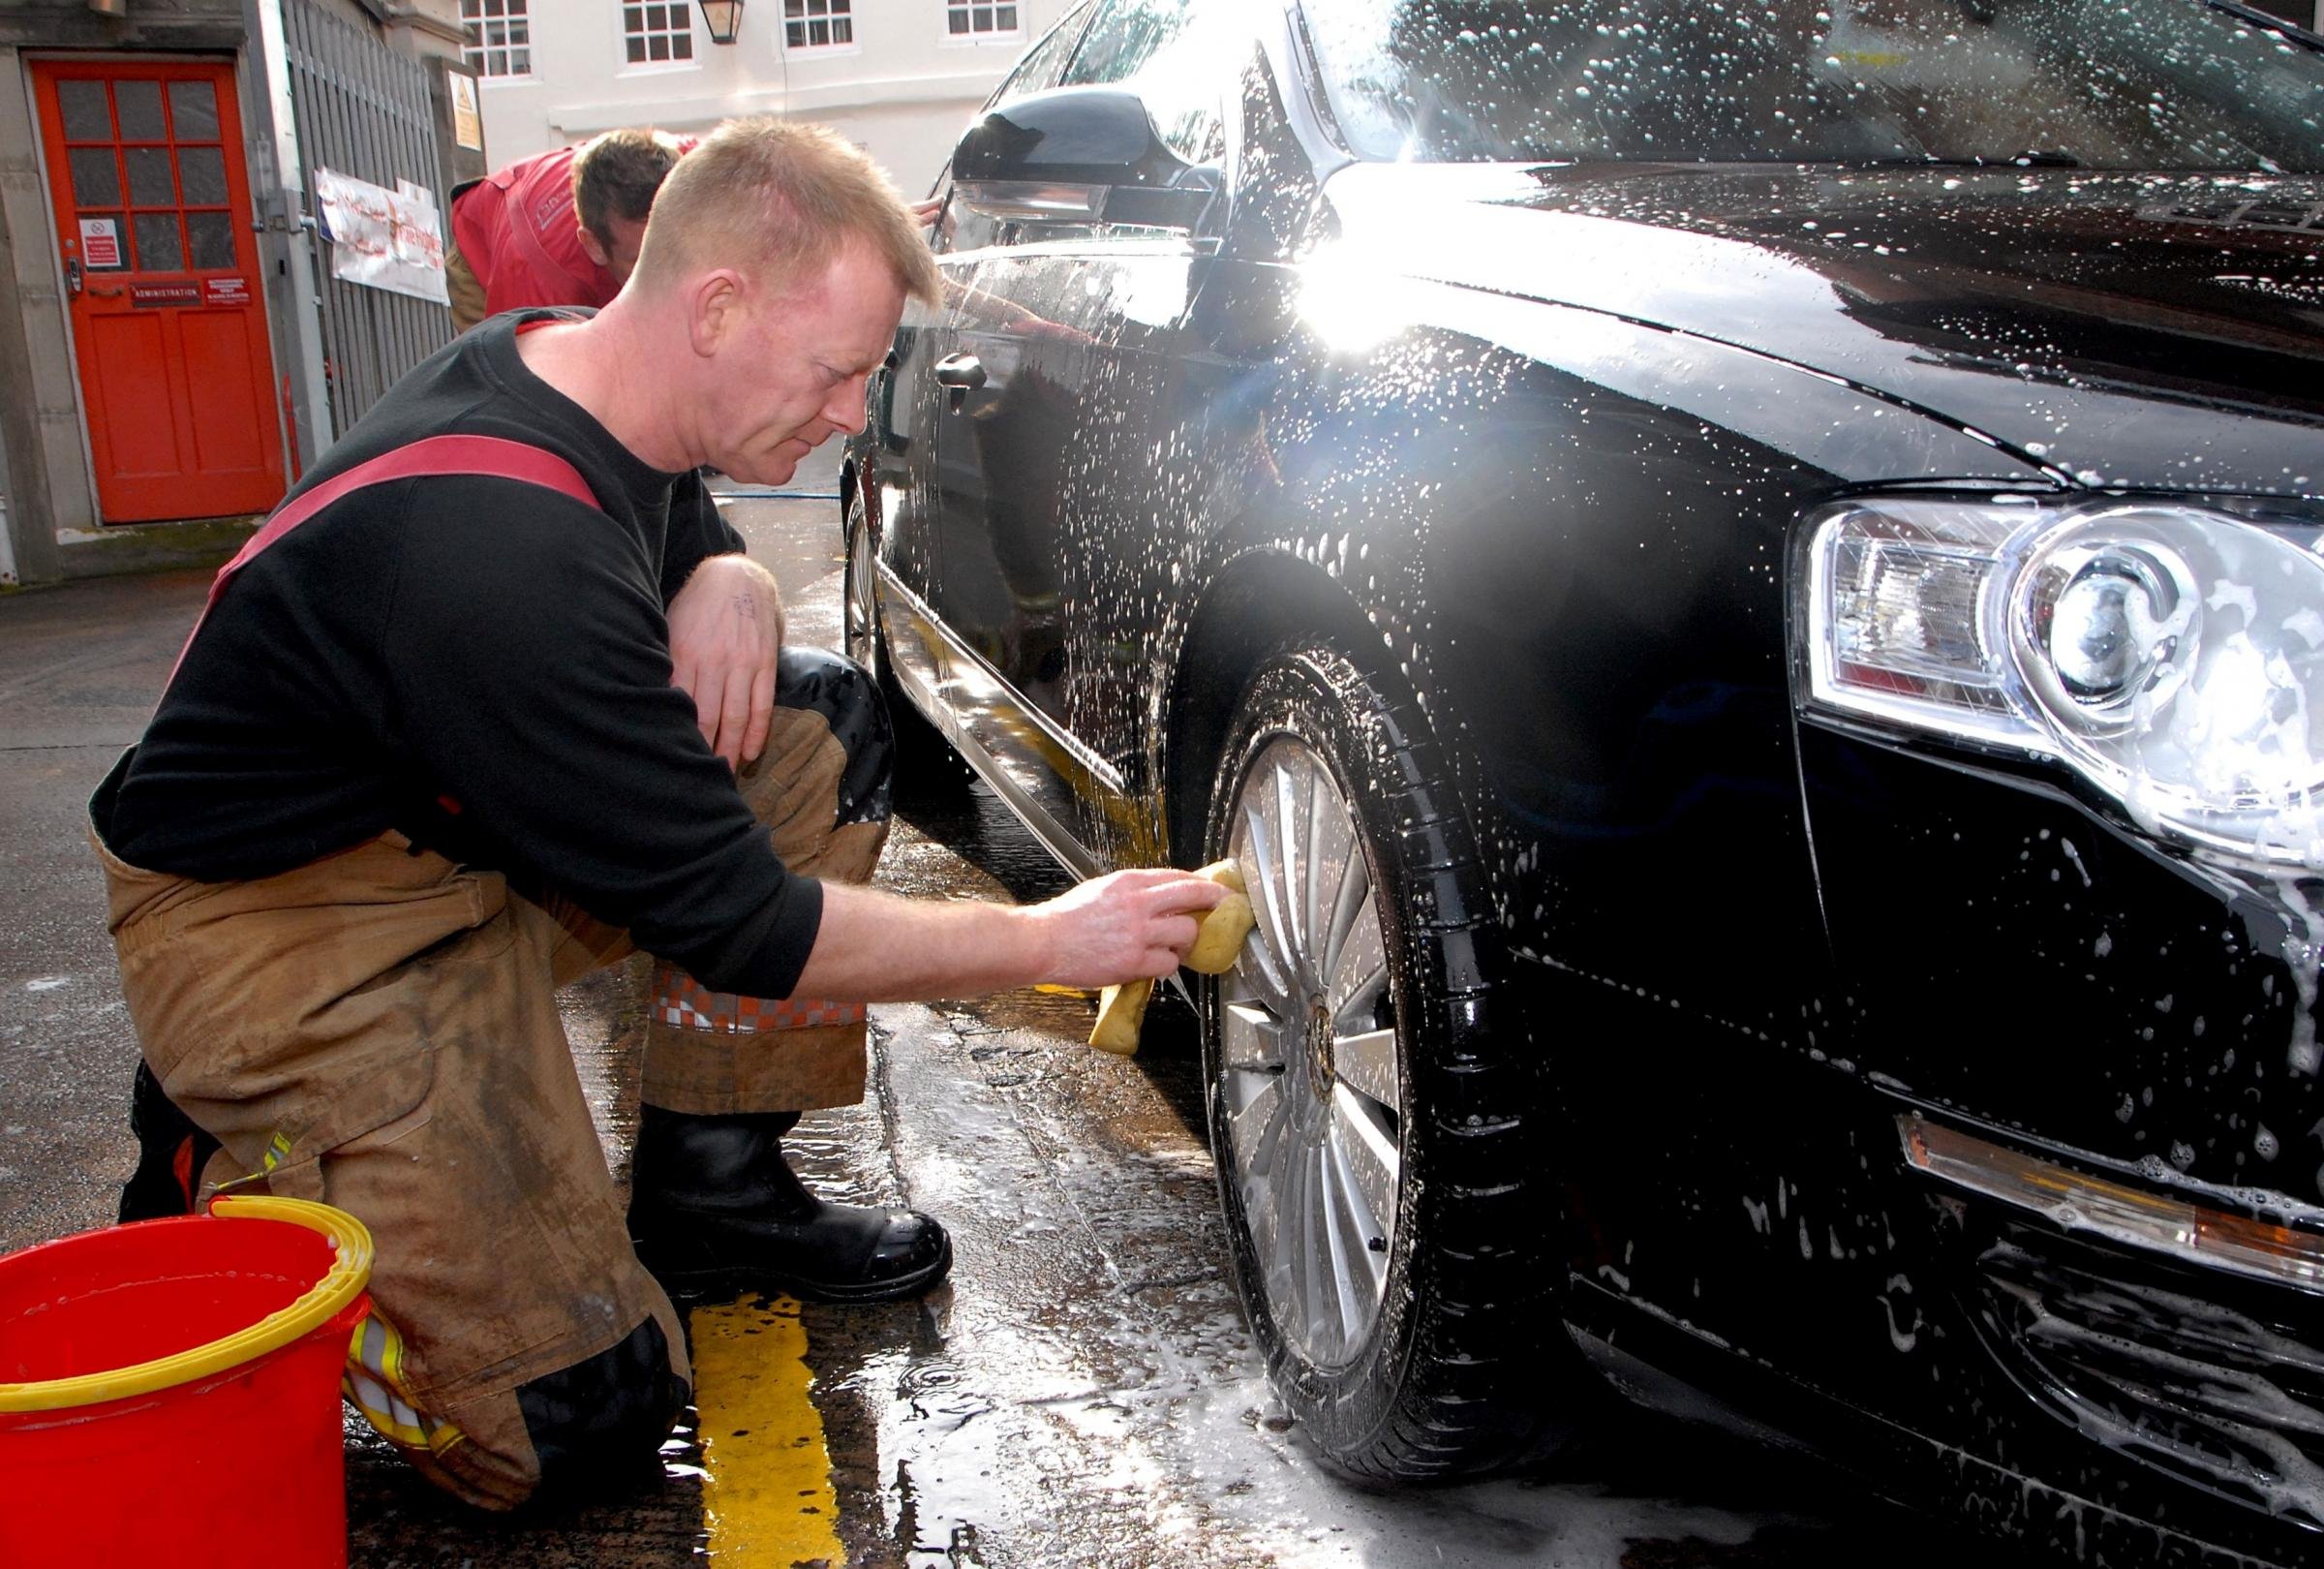 Paul Jackson 08.03.14 Worcester Firefighters charity car wash at Worcester Fire Station. Firefighter Dave Healy. (4468394)